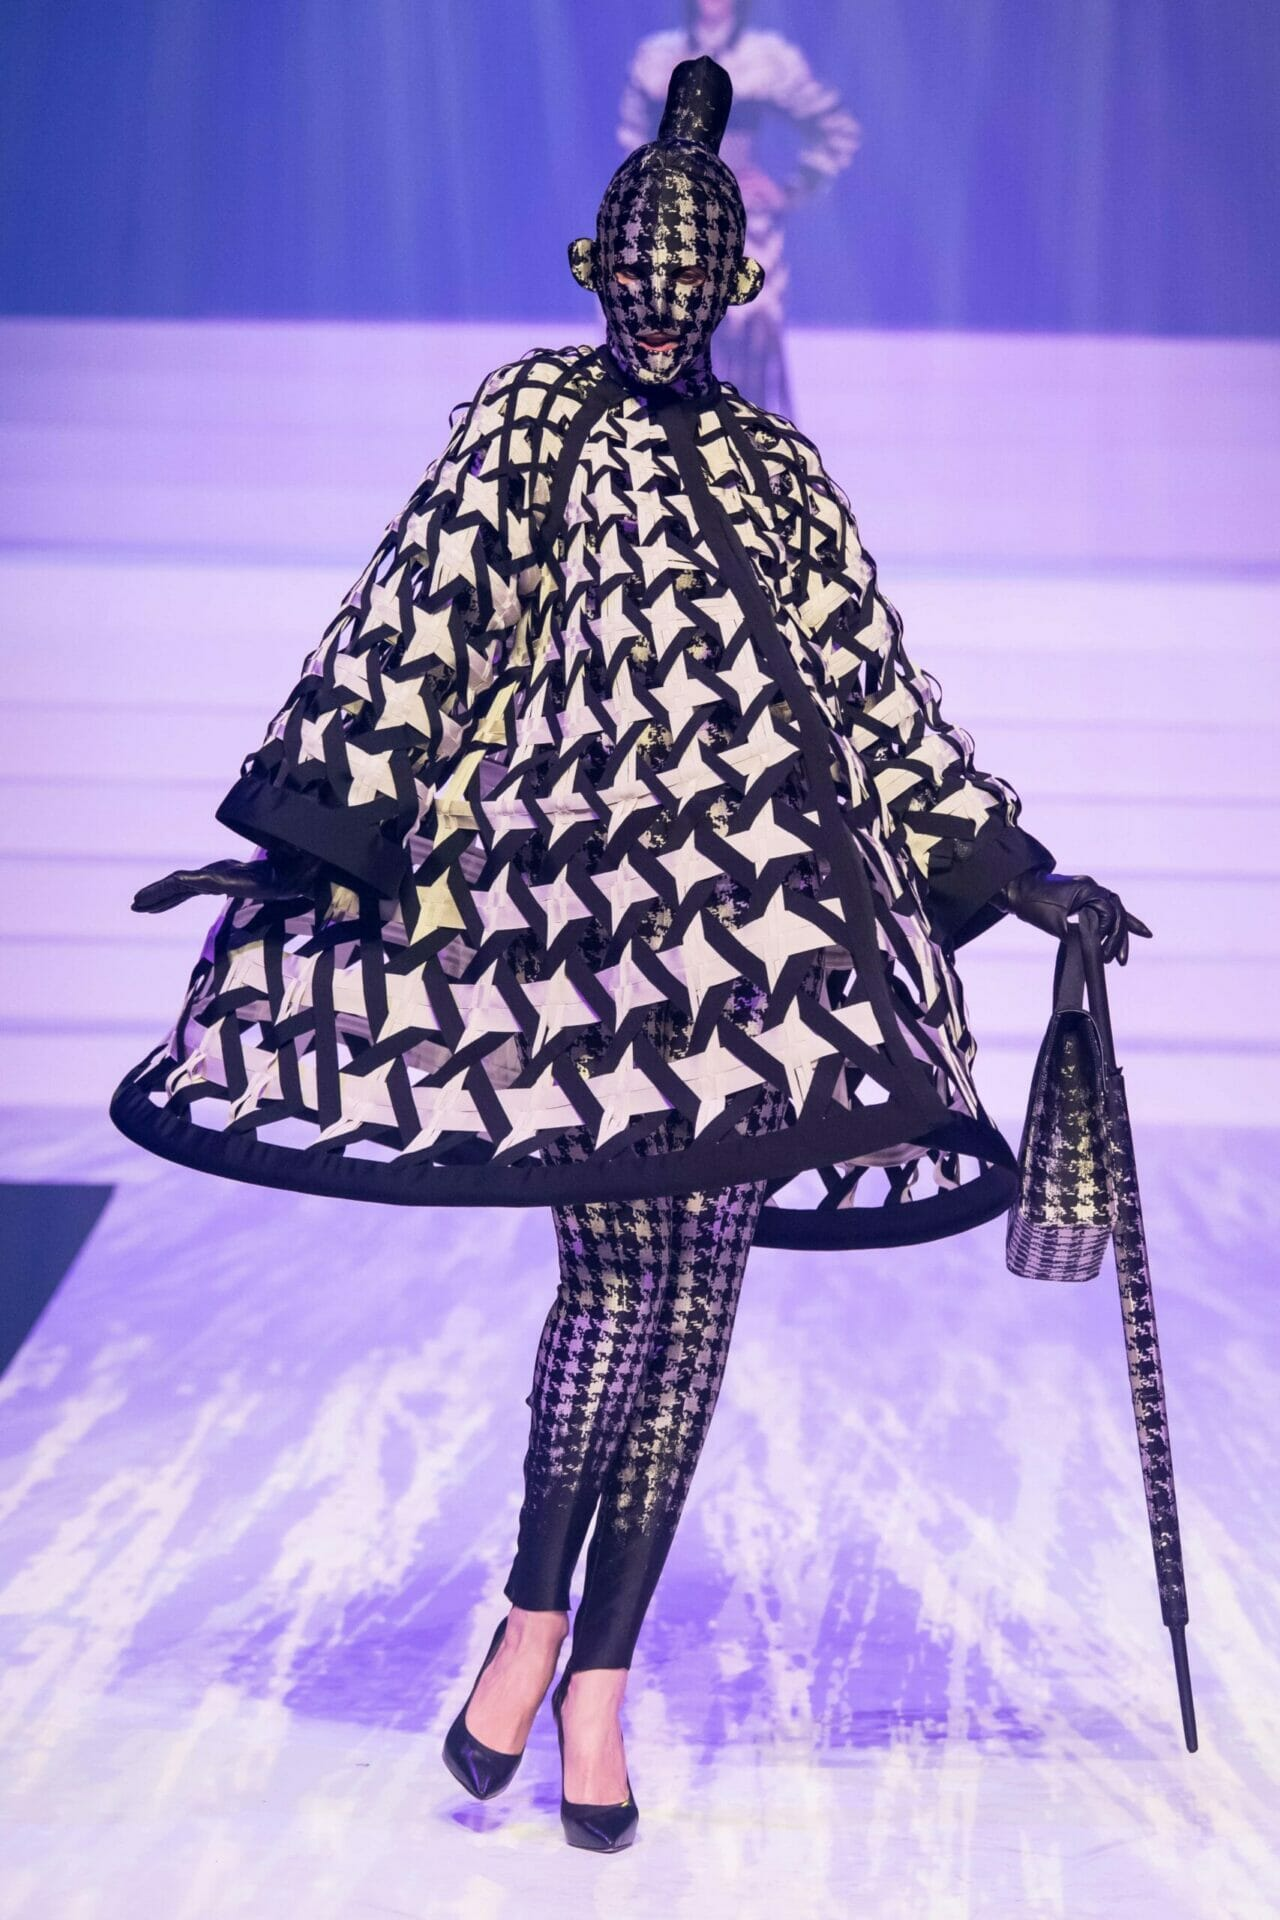 Jean Paul Gaultier Last show Haute Couture Spring Summer 2020. RUNWAY MAGAZINE ® Collections. RUNWAY NOW / RUNWAY NEW